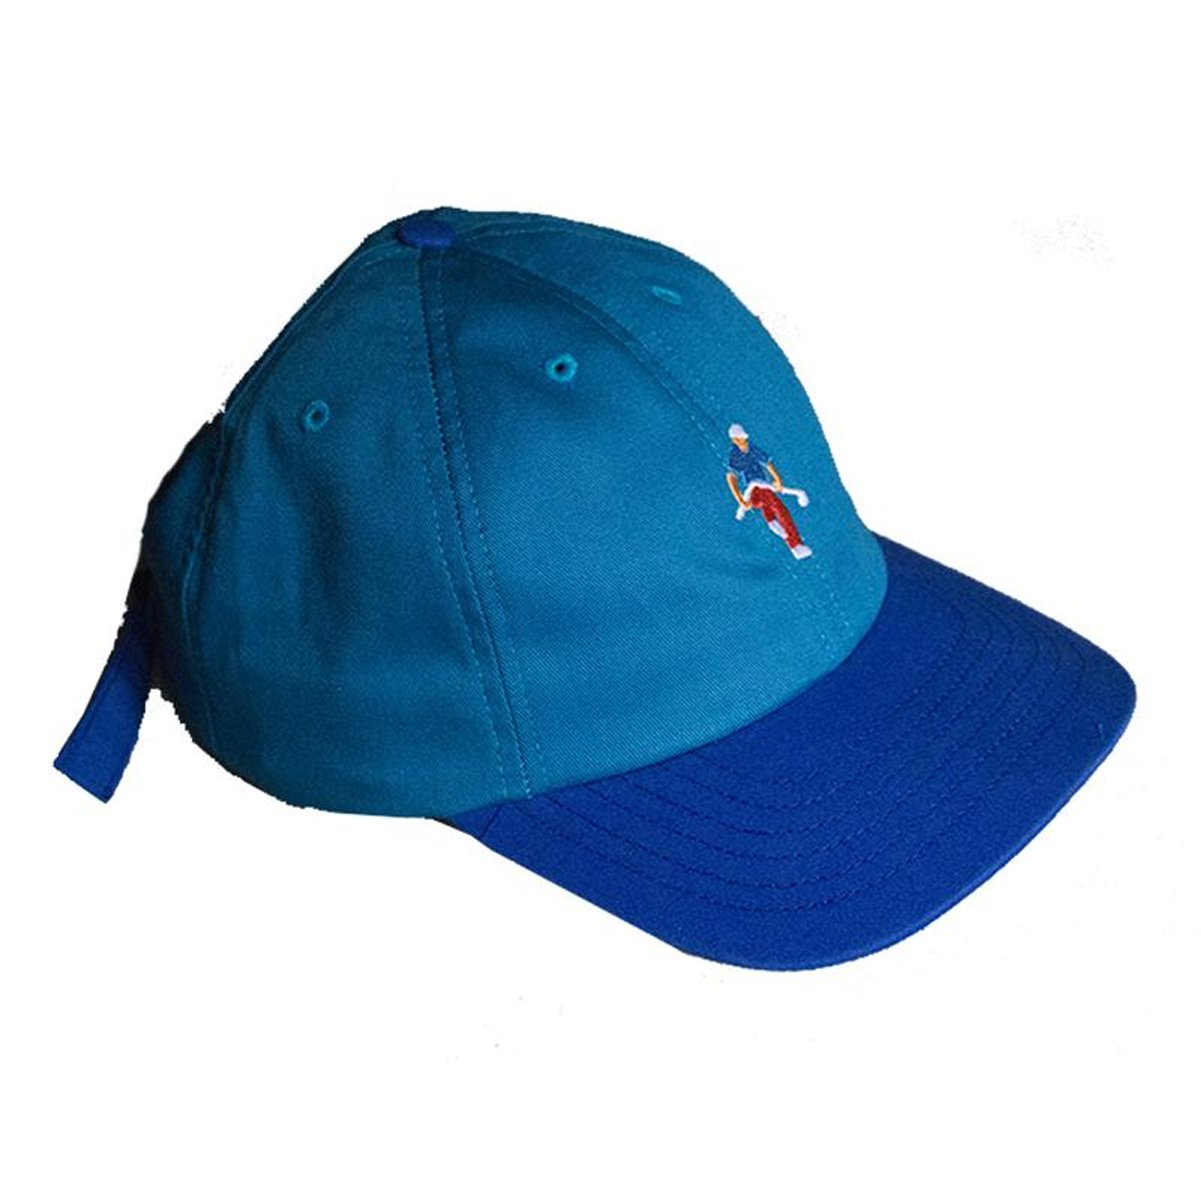 BFresh Gear F Golf - Golf Blues, Retro 90s Style Dad Hat